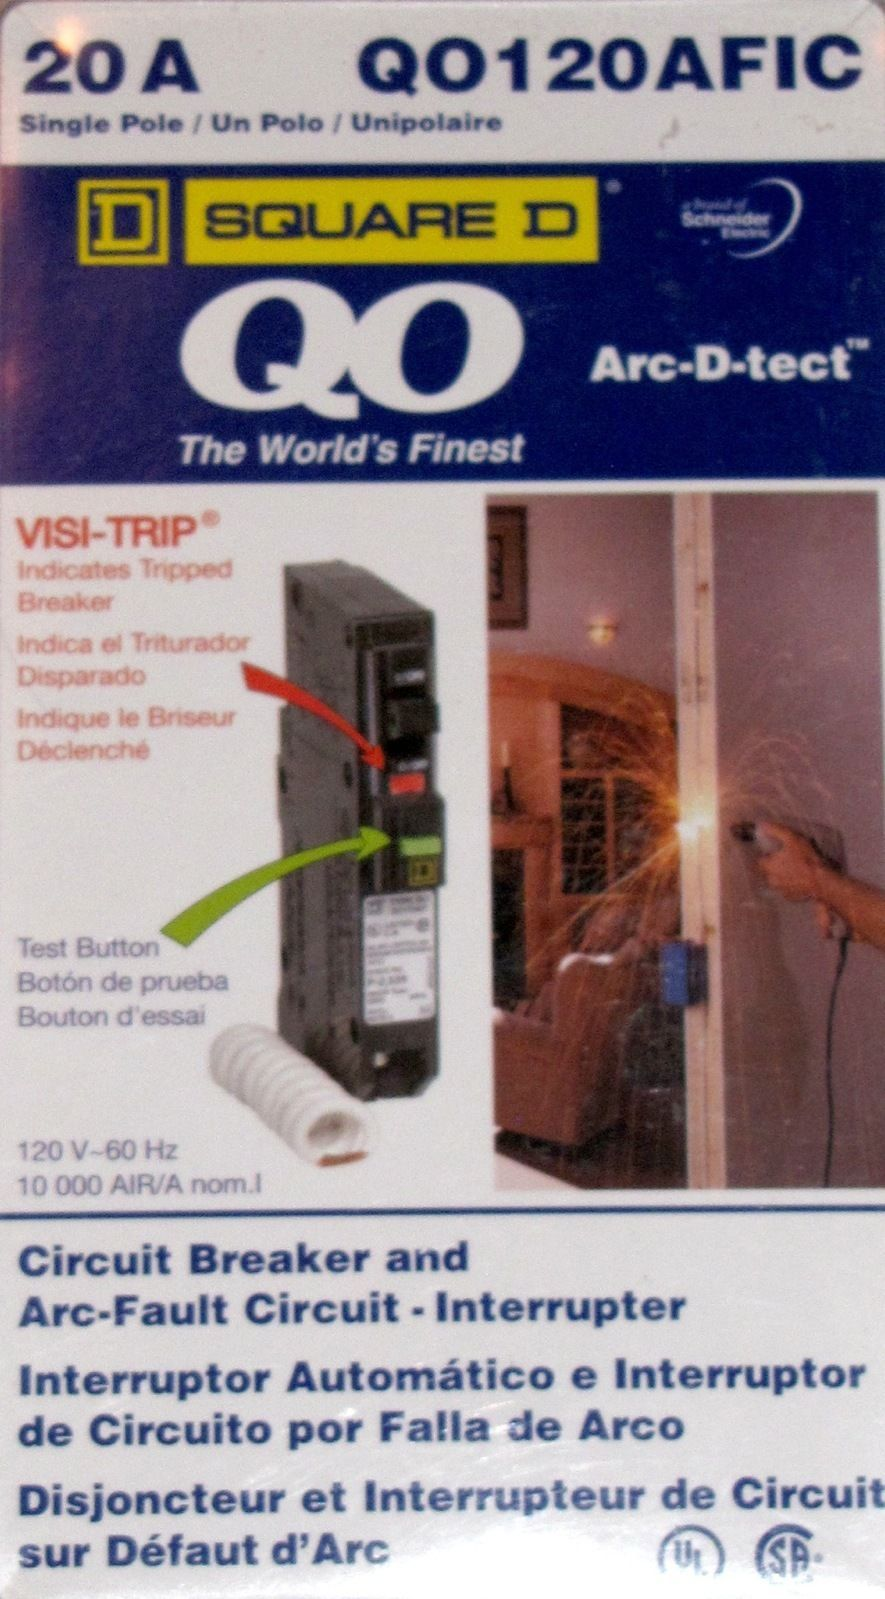 Square D Arc Tect Qo120afic 20a Fault And 50 Similar Items Circuit Breaker In Addition Interrupter